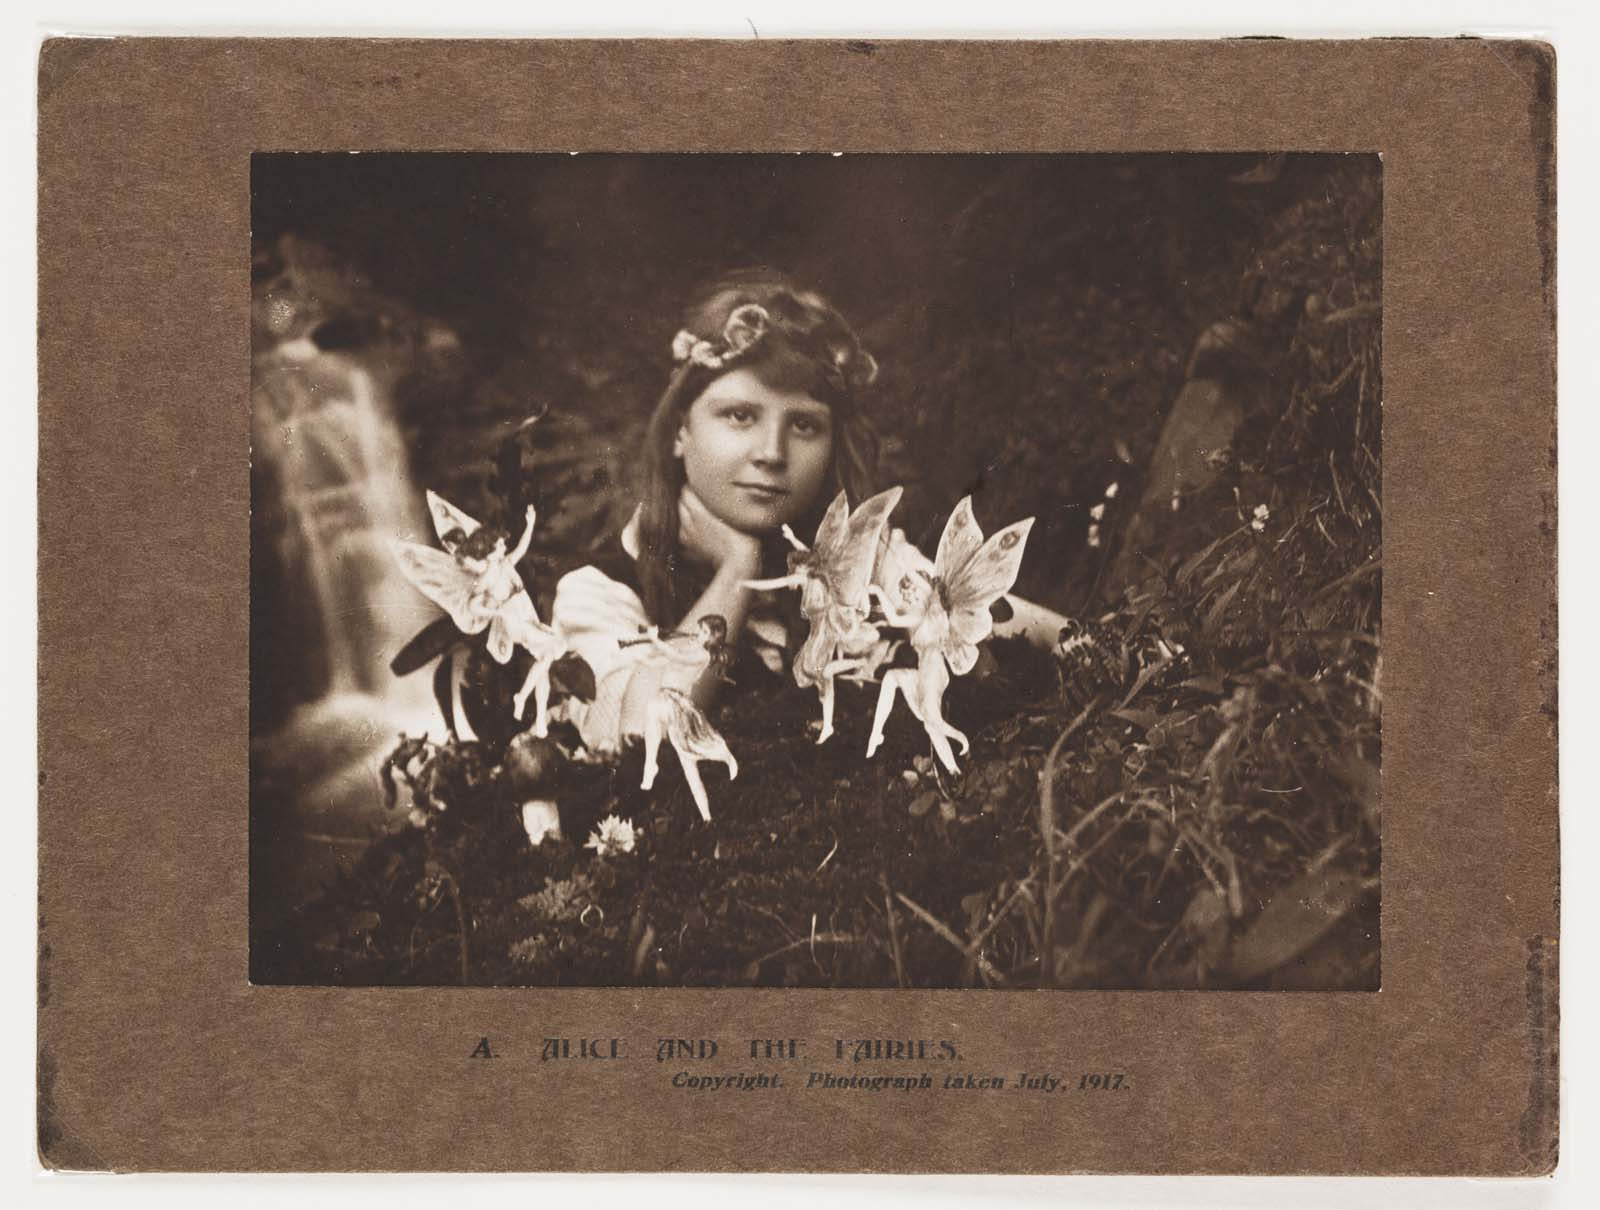 a black and white photo of a young girl with cut outs of fairies in front of her